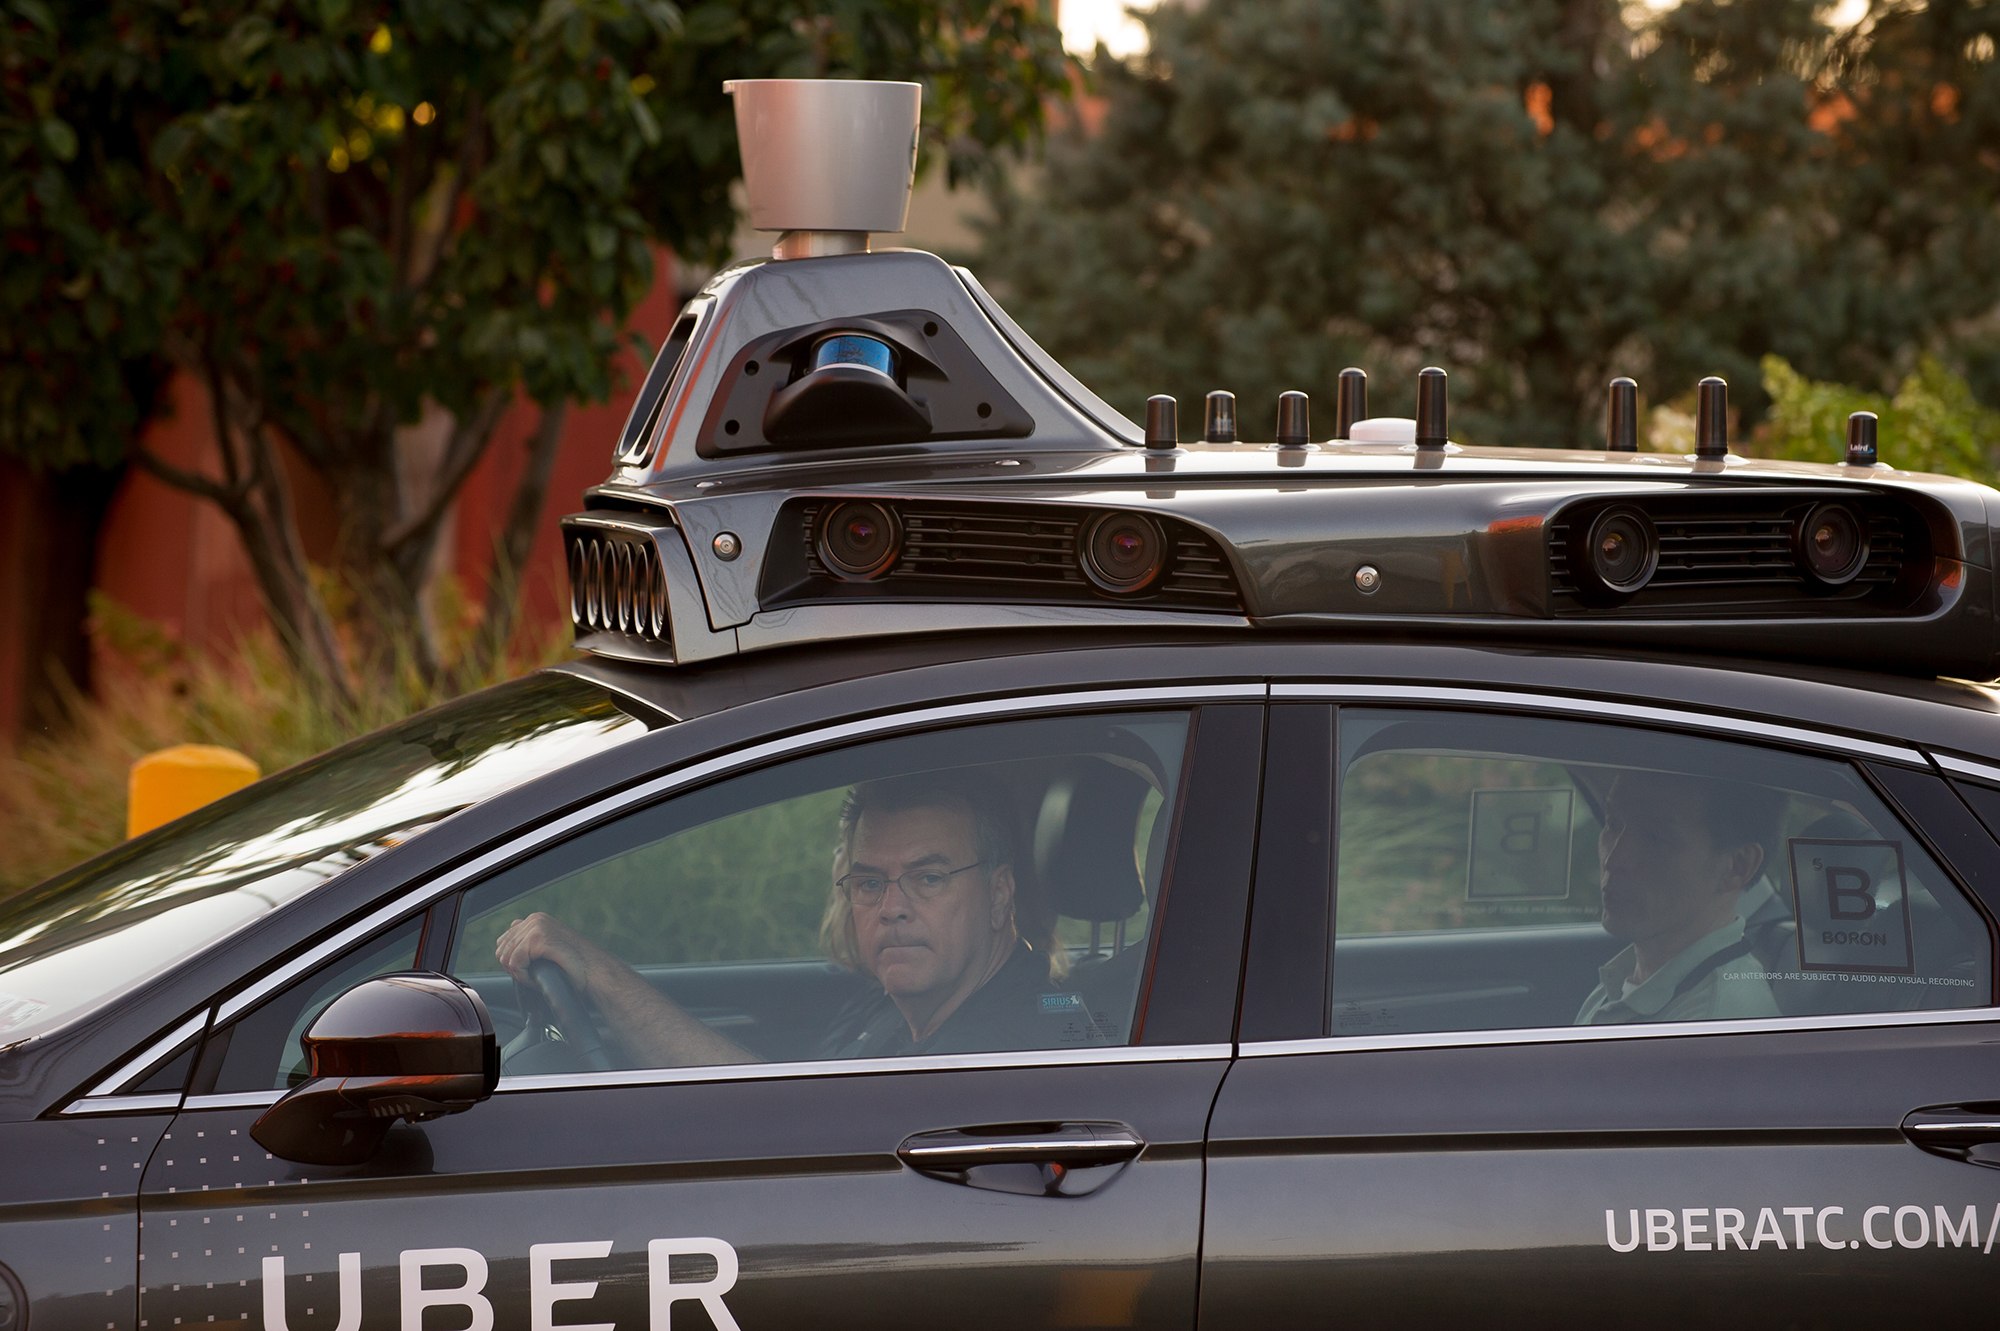 An Uber driverless Ford Fusion drives down Smallman Street on September, 22, 2016 in Pittsburgh, Pennsylvania. Uber has built its Uber Technical Center in Pittsburgh and is developing an autonomous vehicle that it hopes will be able to transport its millions of clients without the need for a driver. (Photo by Jeff Swensen/Getty Images)